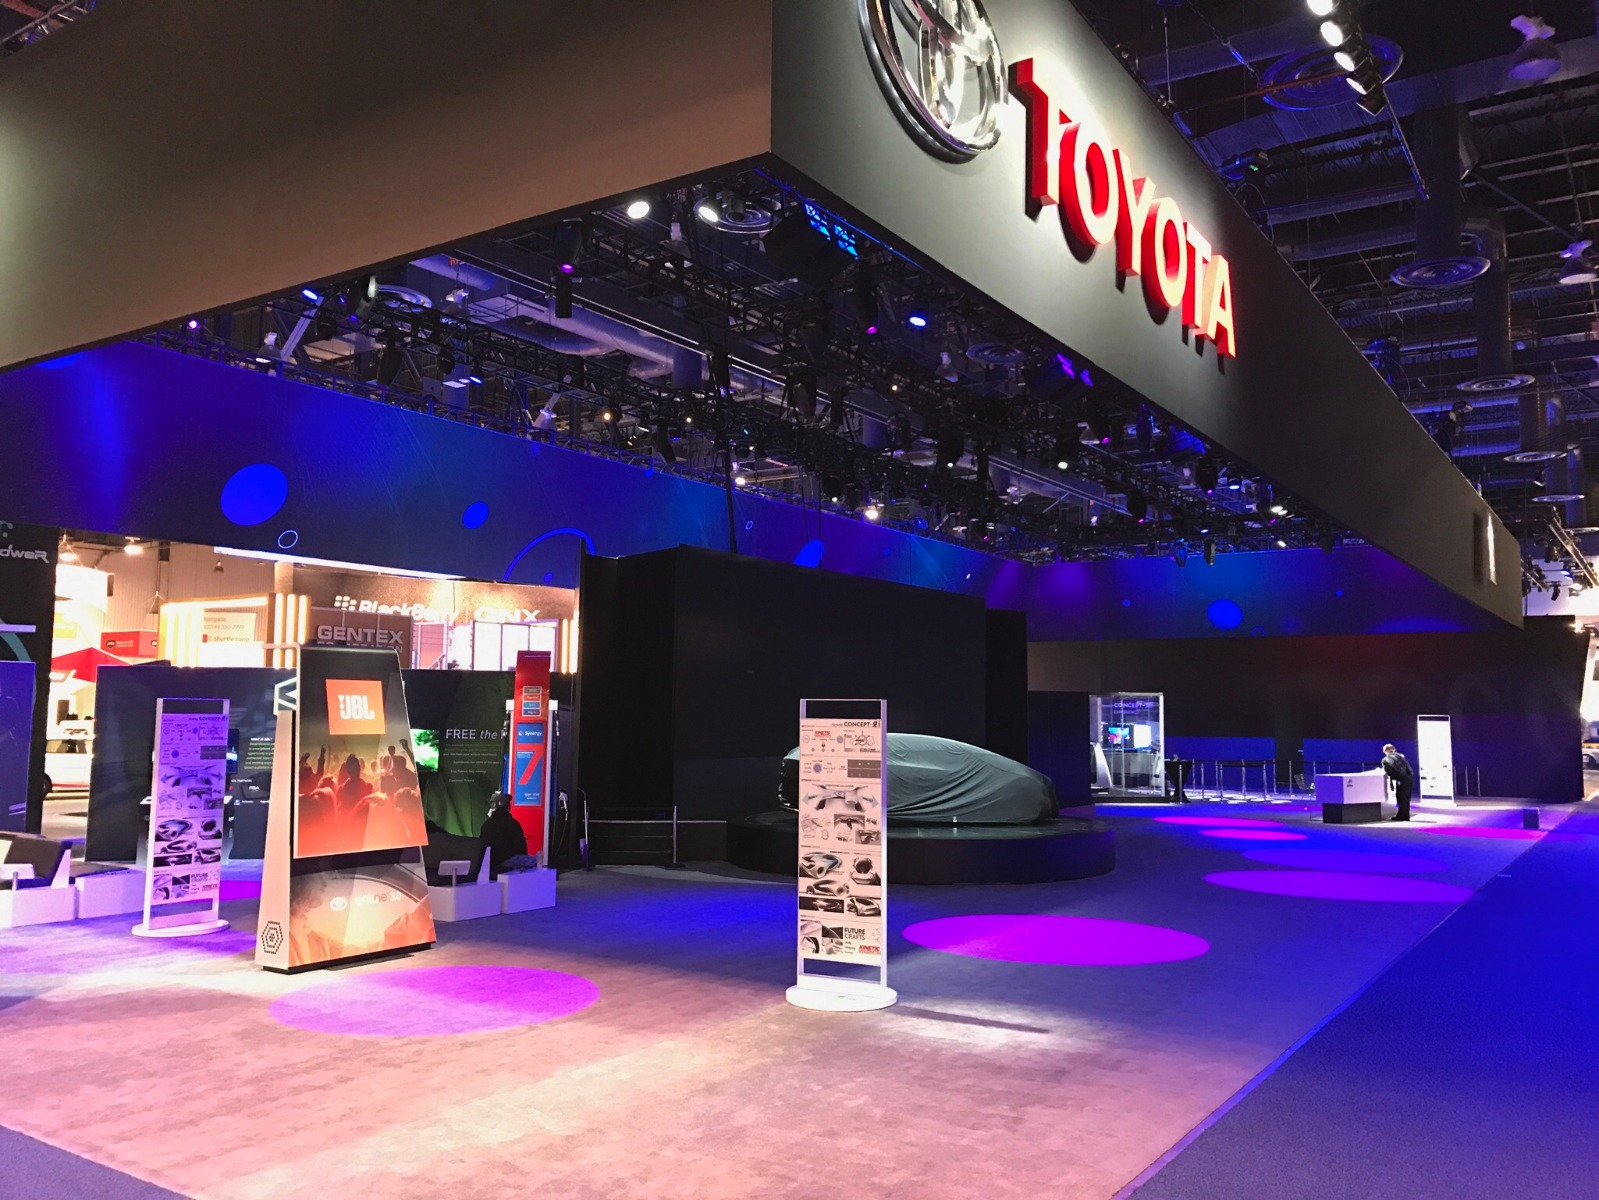 Held January 5-8 in Las Vegas CES is the place to see whatu0027s next in tech and has always attracted the latest in automobile technology. & TLS Productions Uses Elation Lighting on Award-winning Toyota ... azcodes.com